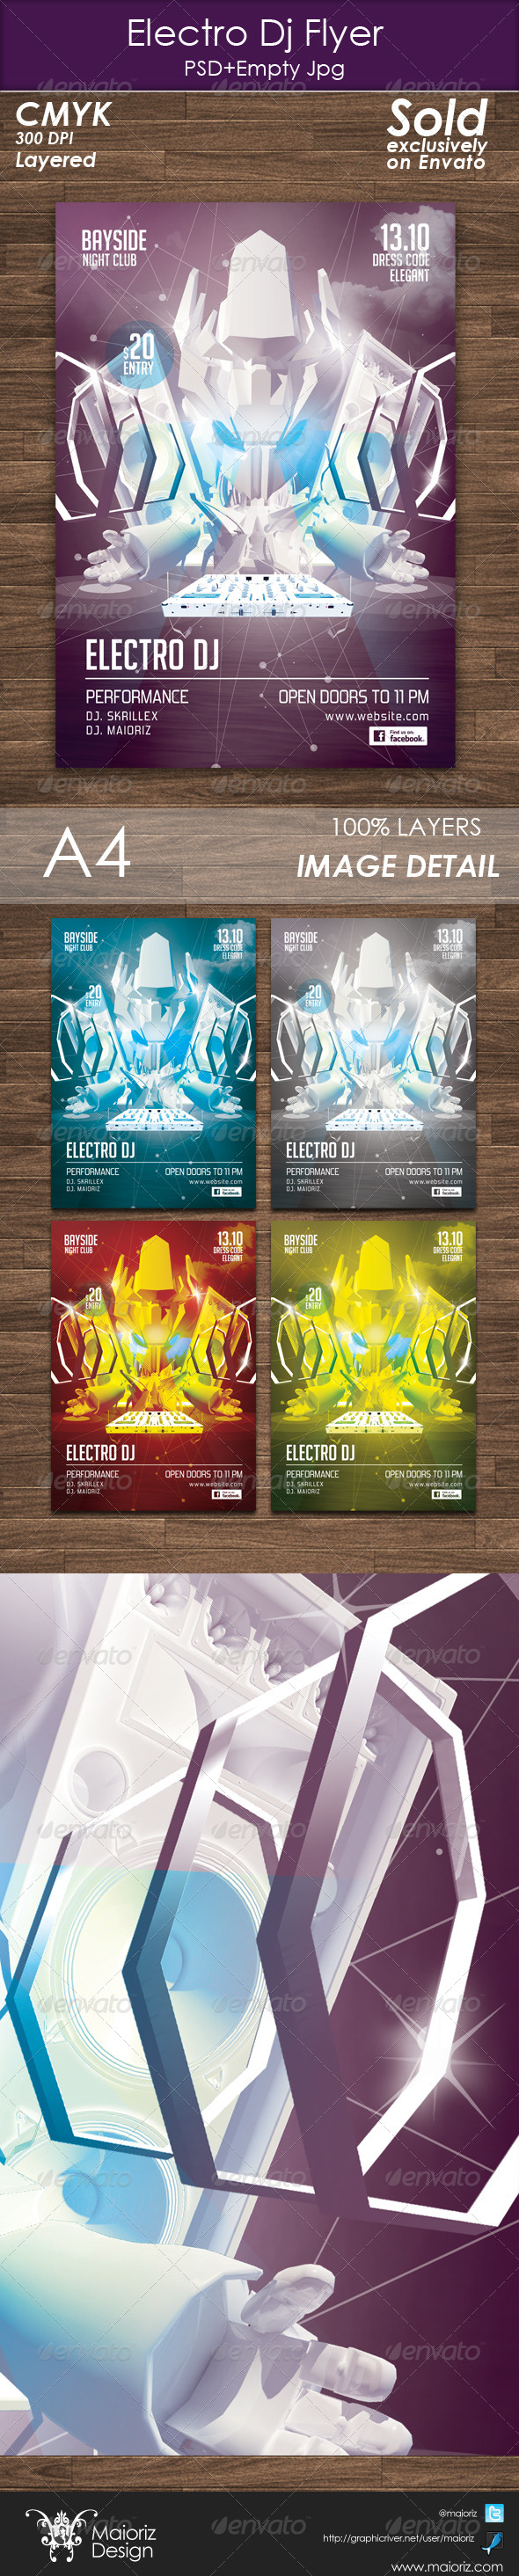 GraphicRiver Electro Dj Flyer Template 5562568